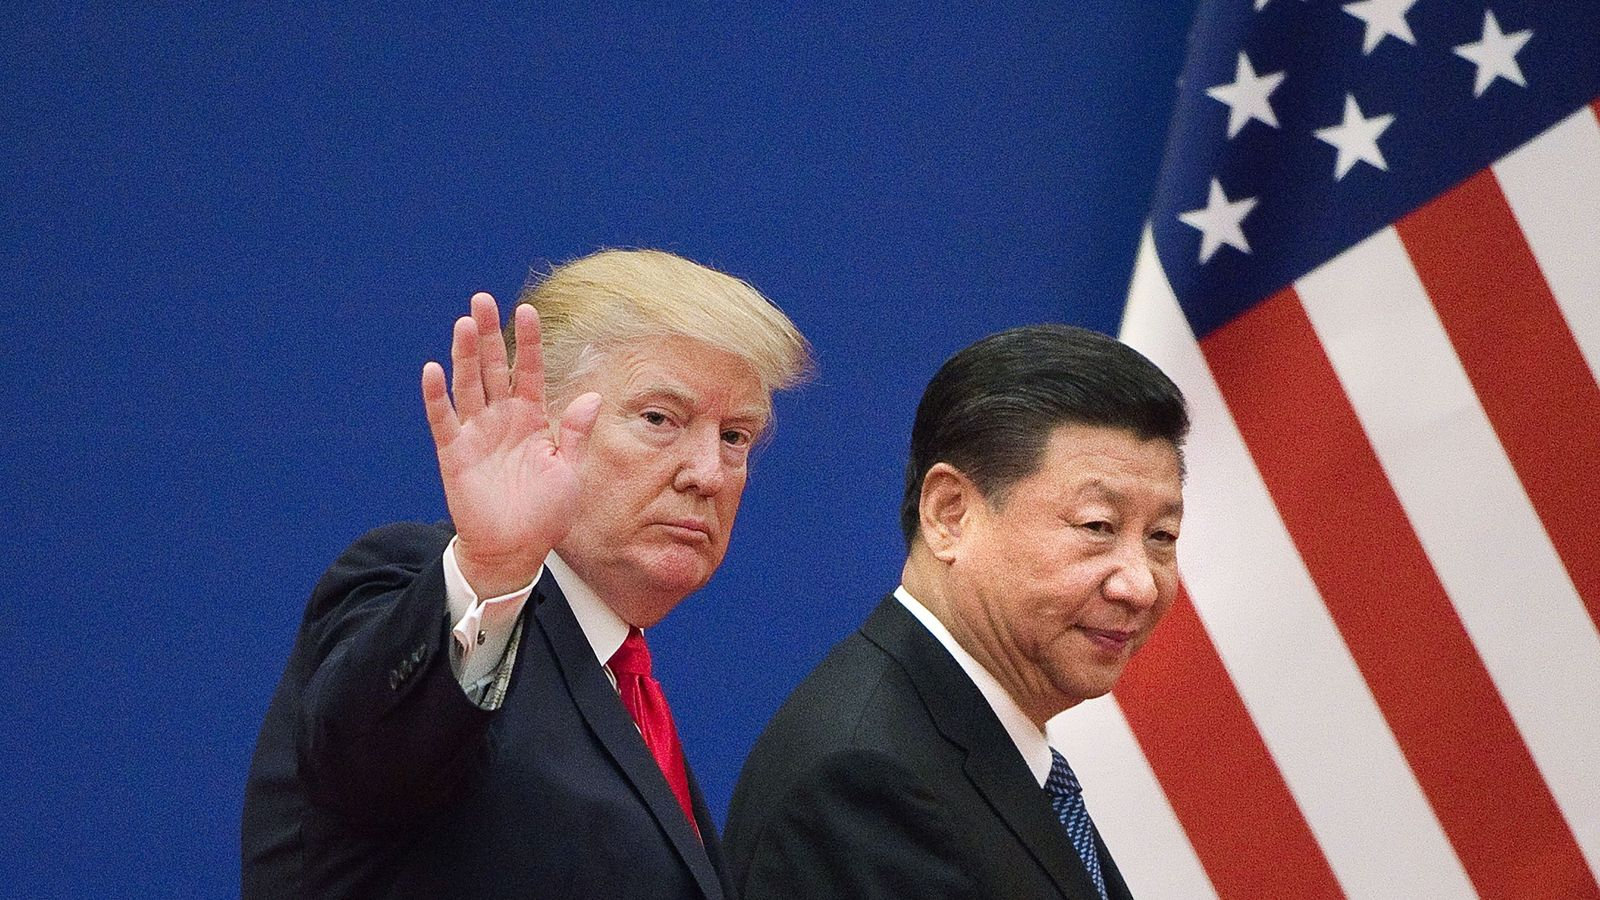 Trump furiously responds to China's new retaliatory tariffs